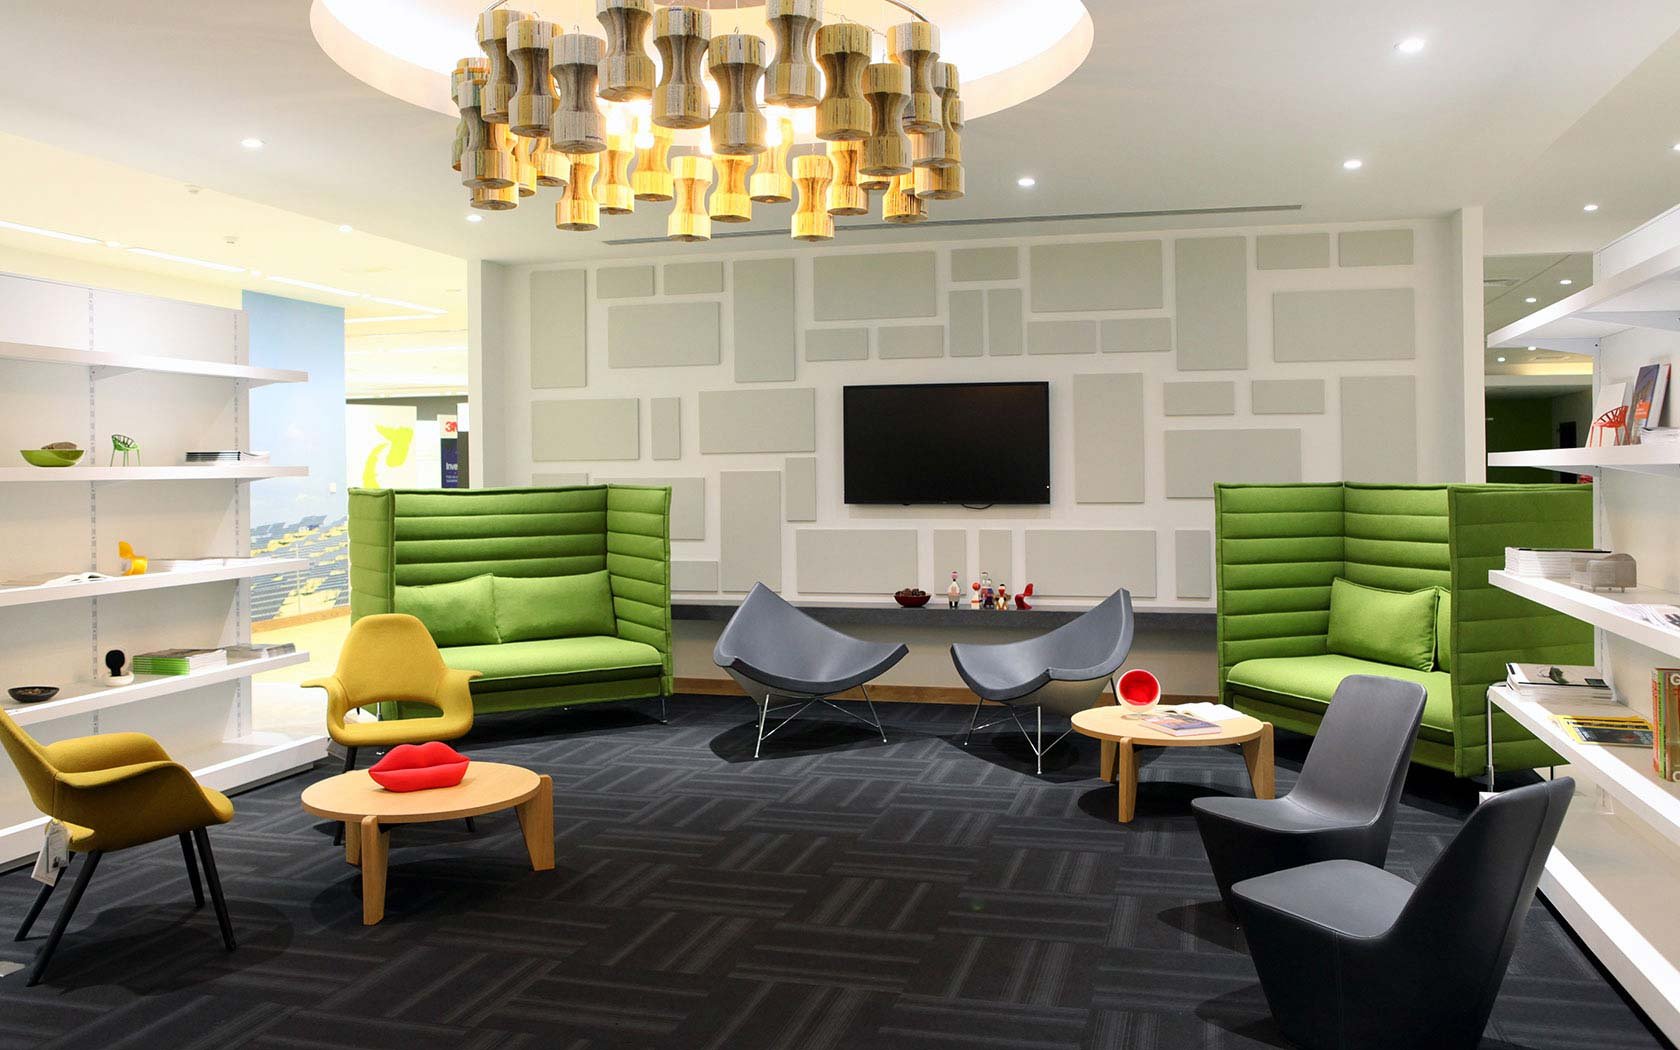 Delta lighting solutions projects tci the change for Design hub interior decoration llc